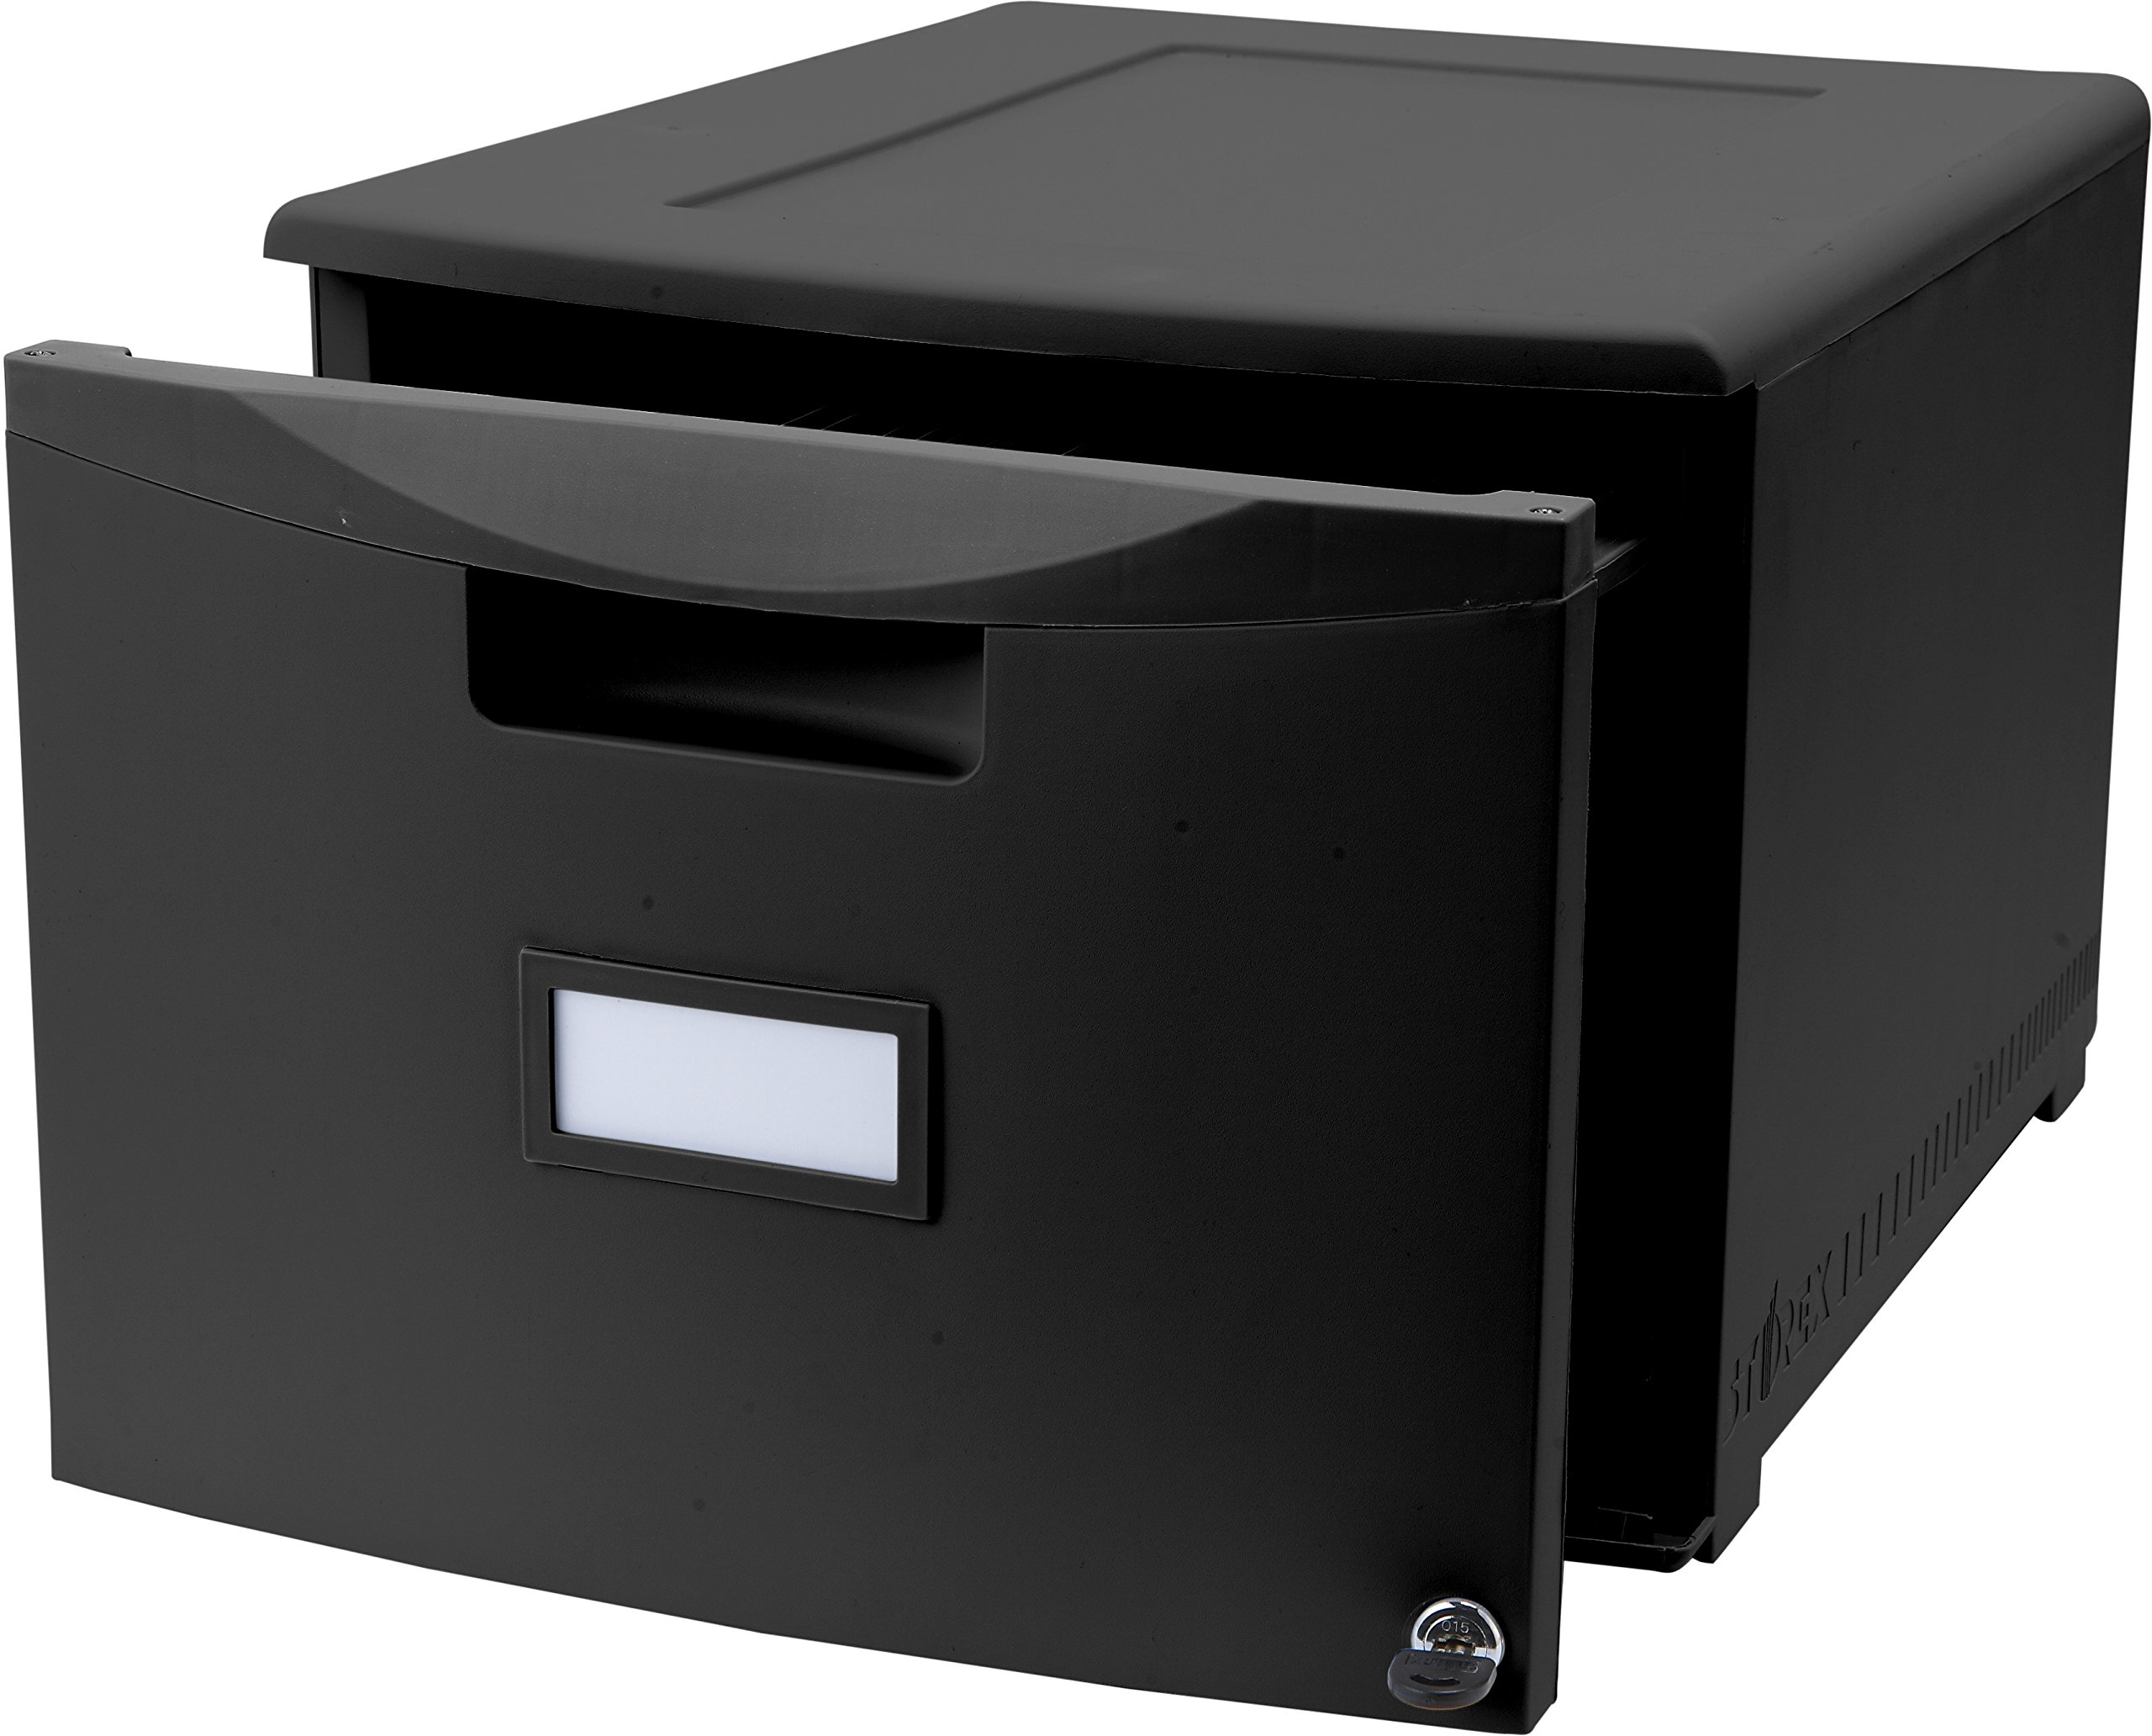 Storex Single Drawer Mini File Cabinet with Lock, Legal/Letter, 18.25 x 14.75 x 12.75 Inches, Black (STX61260B01C) by Storex